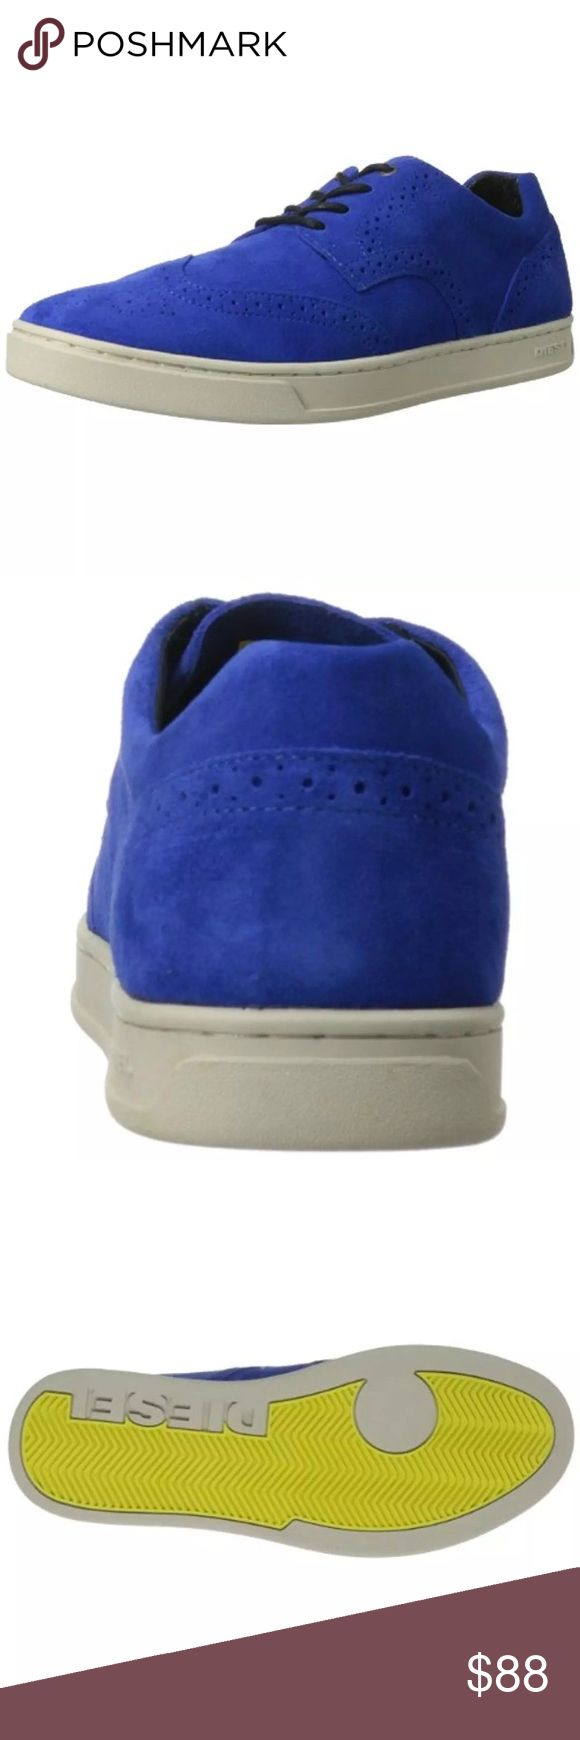 Diesel Prime Time Blue Suede Casual Sneakers (D) Diesel Mens Prime Time Blue Suede Casual Shoes Sneakers multiple sizesMedium (D)  Manufacturer: Diesel Size: 10,10.5,11Medium (D) Size Origin: US Manufacturer Color: Royal Blue Retail: $150.00 Condition: New with box Style Type: Casual Shoes Collection: Diesel Shoe Width: Medium (D) Heel Height: 1 Inches Platform Height: 1 Inches Closure: Front Lace Material: Cow Leather/Man Made Fabric Type: Suede Specialty: Brogue Style Number: Y00846 Diesel…